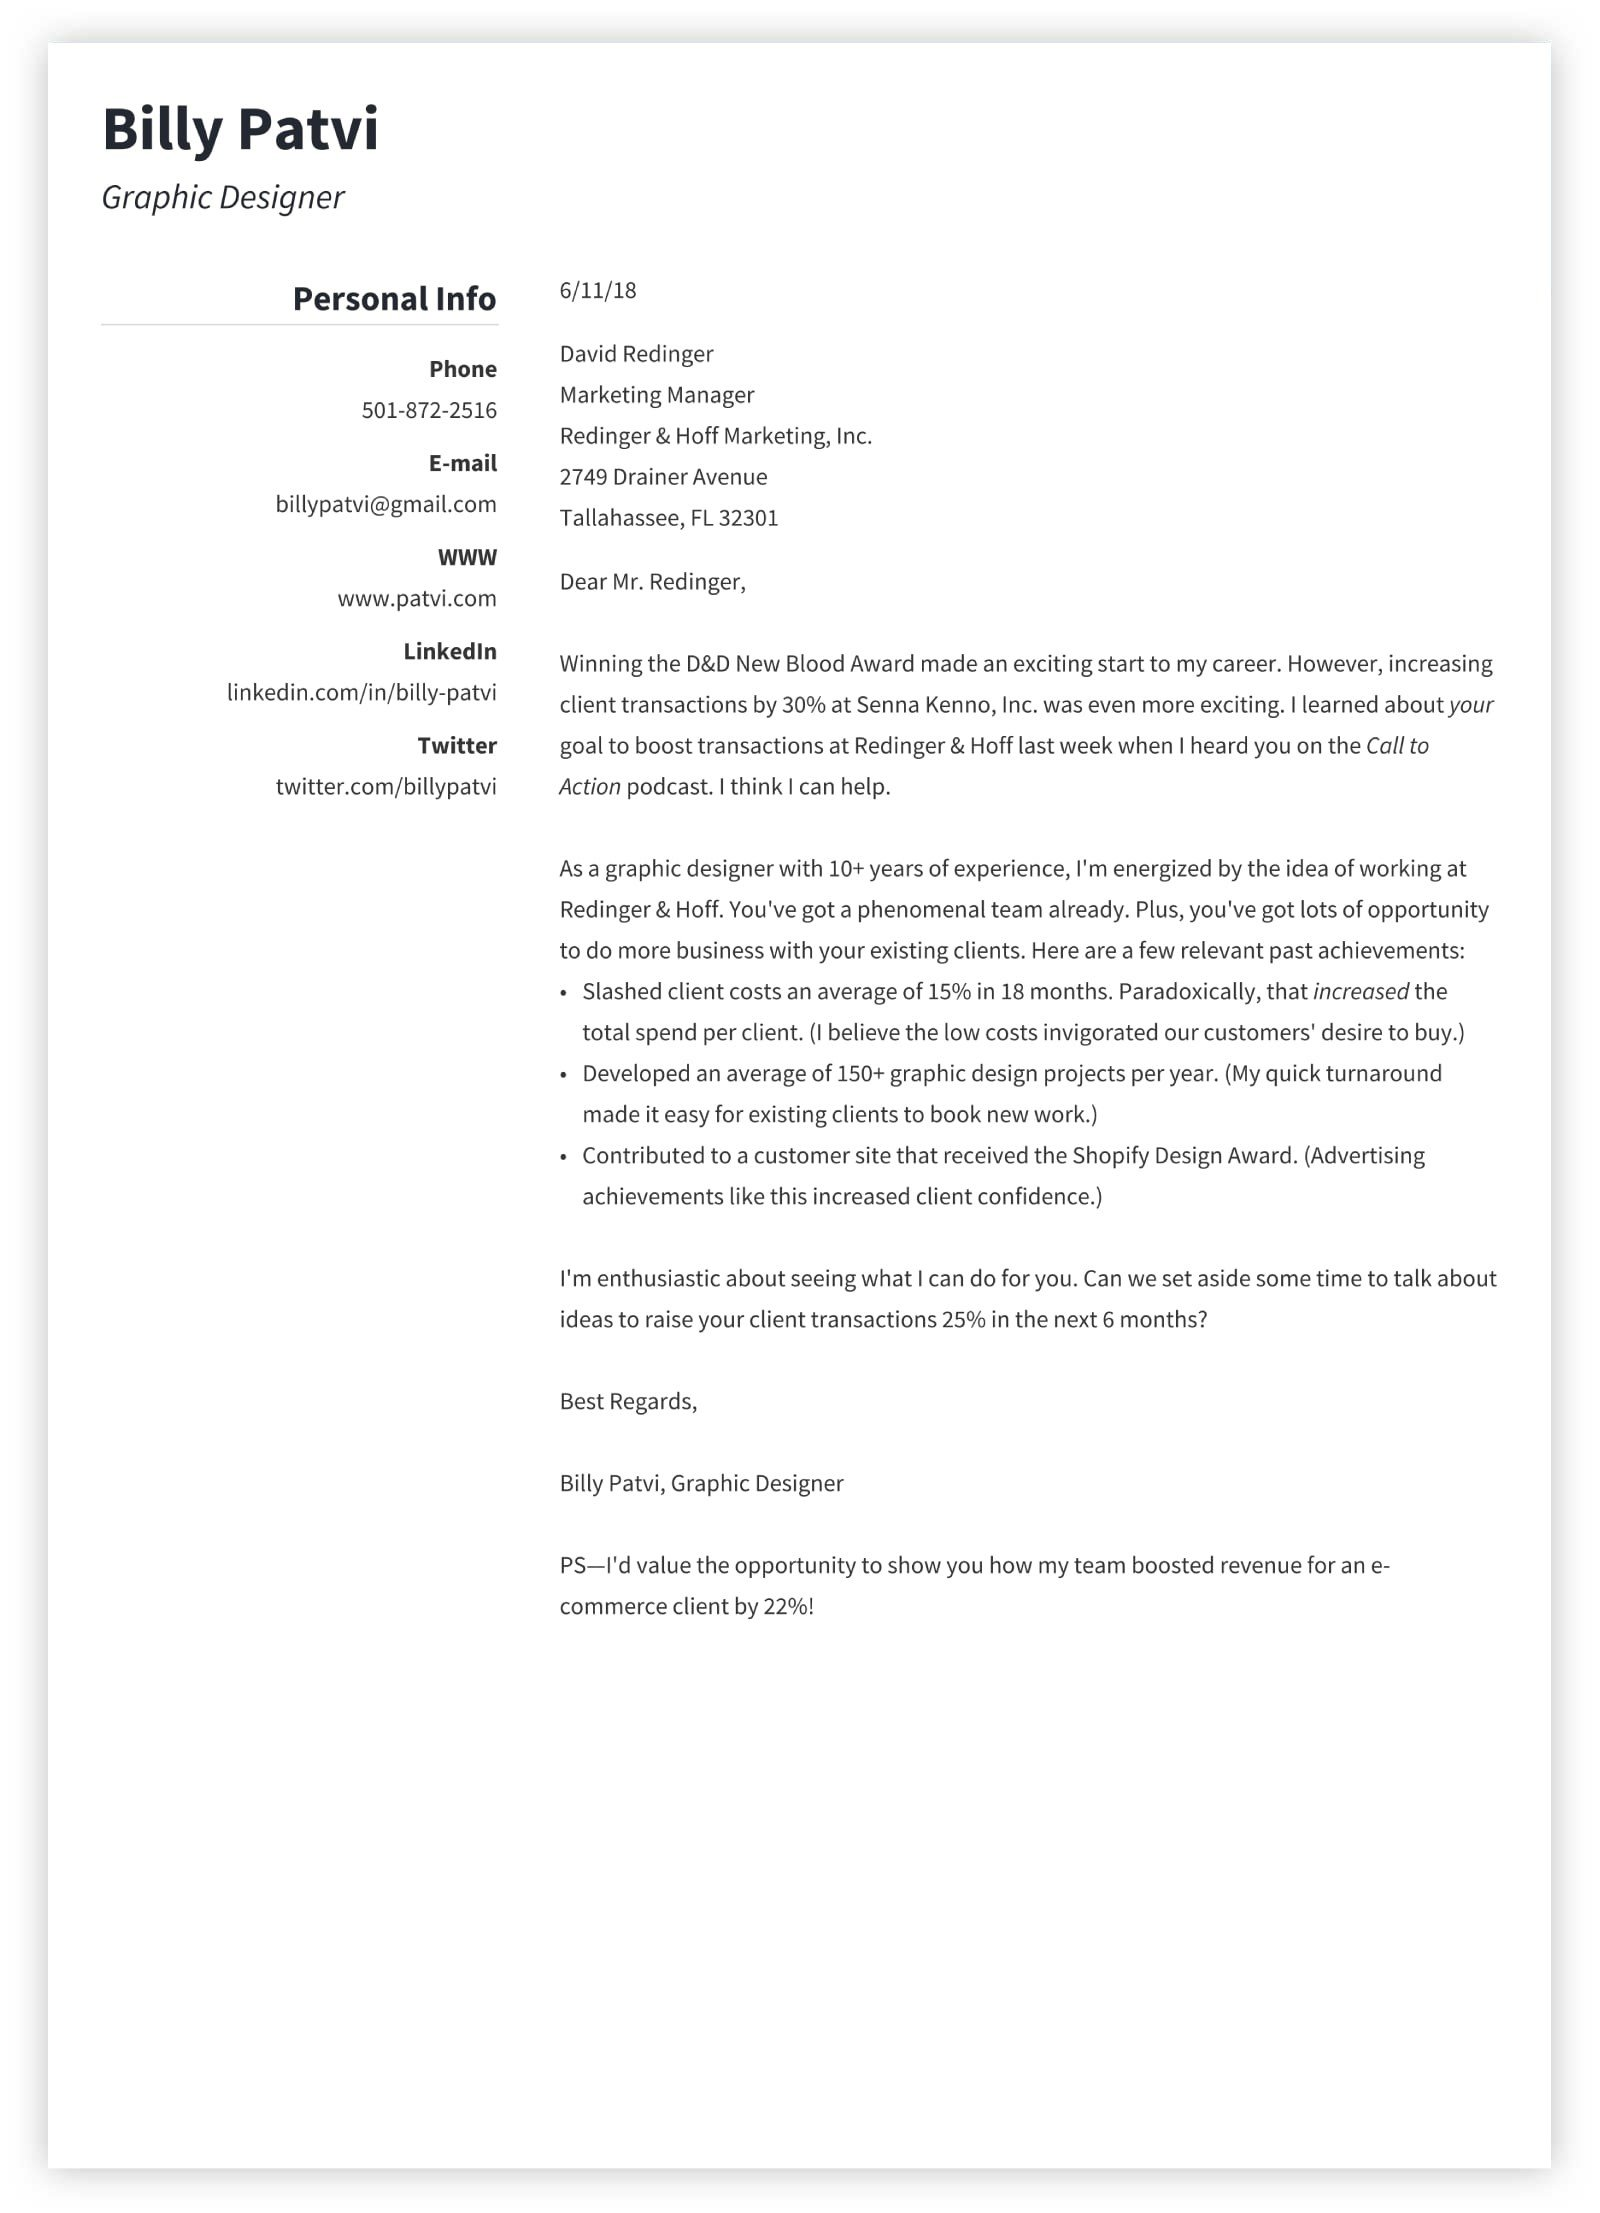 How to Write a Cover Letter for a Resume (12+ Job-Winning Examples)